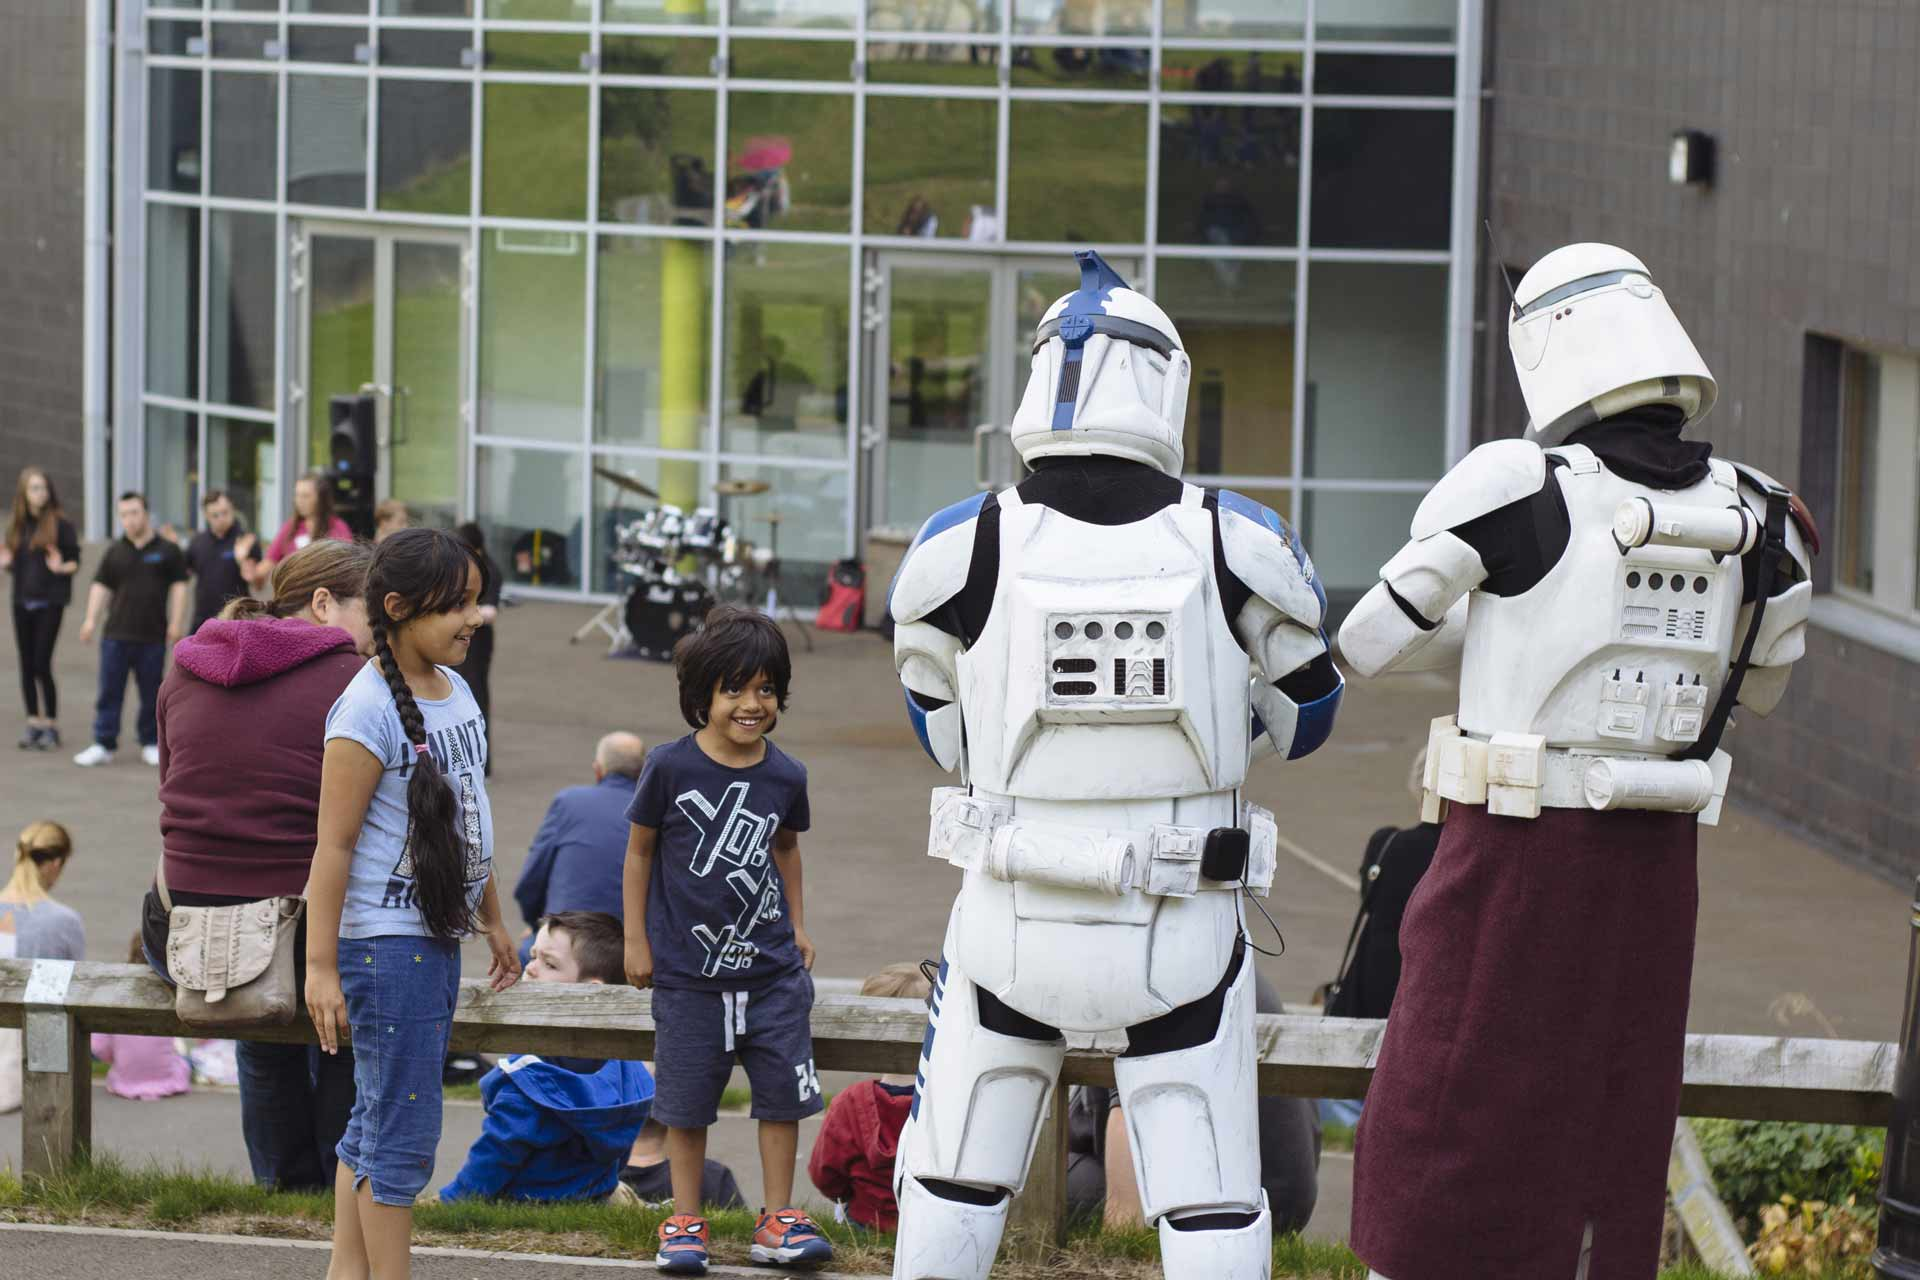 Two children and two Stormtroopers